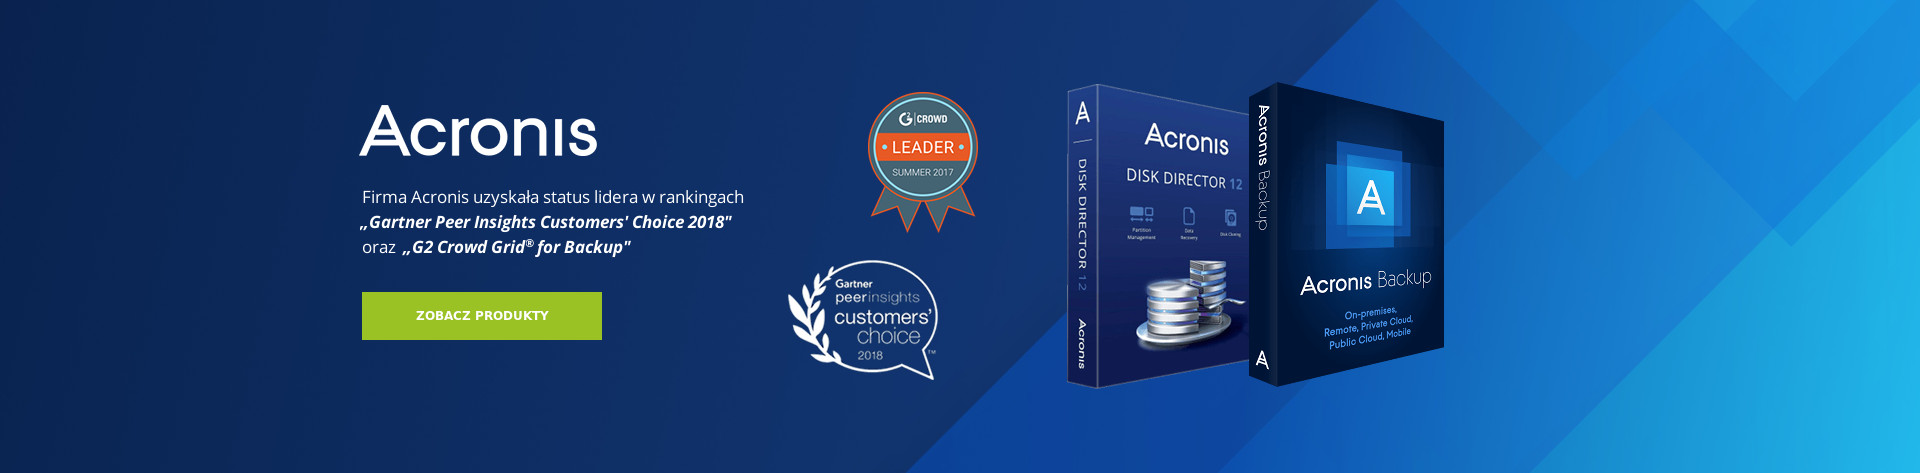 Acronis Liderem Gartner